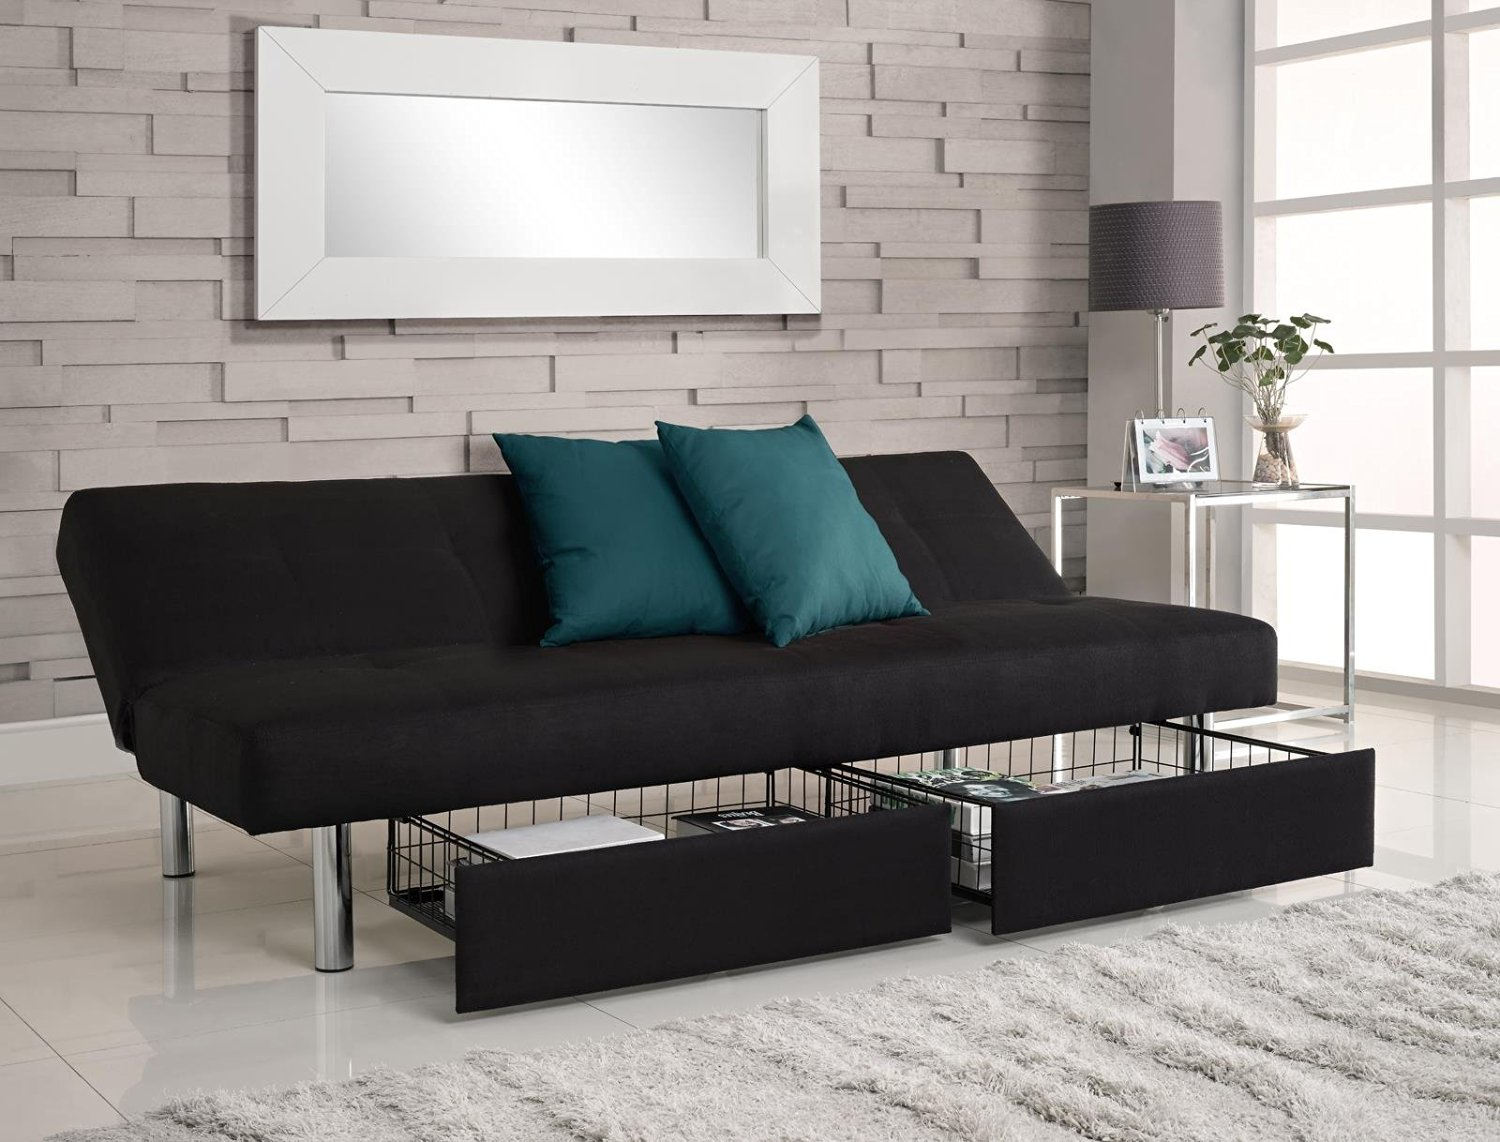 schlafcouch modern savera schlafsofa schlafcouch modern sofa couch stoffbezug rosa mit. Black Bedroom Furniture Sets. Home Design Ideas